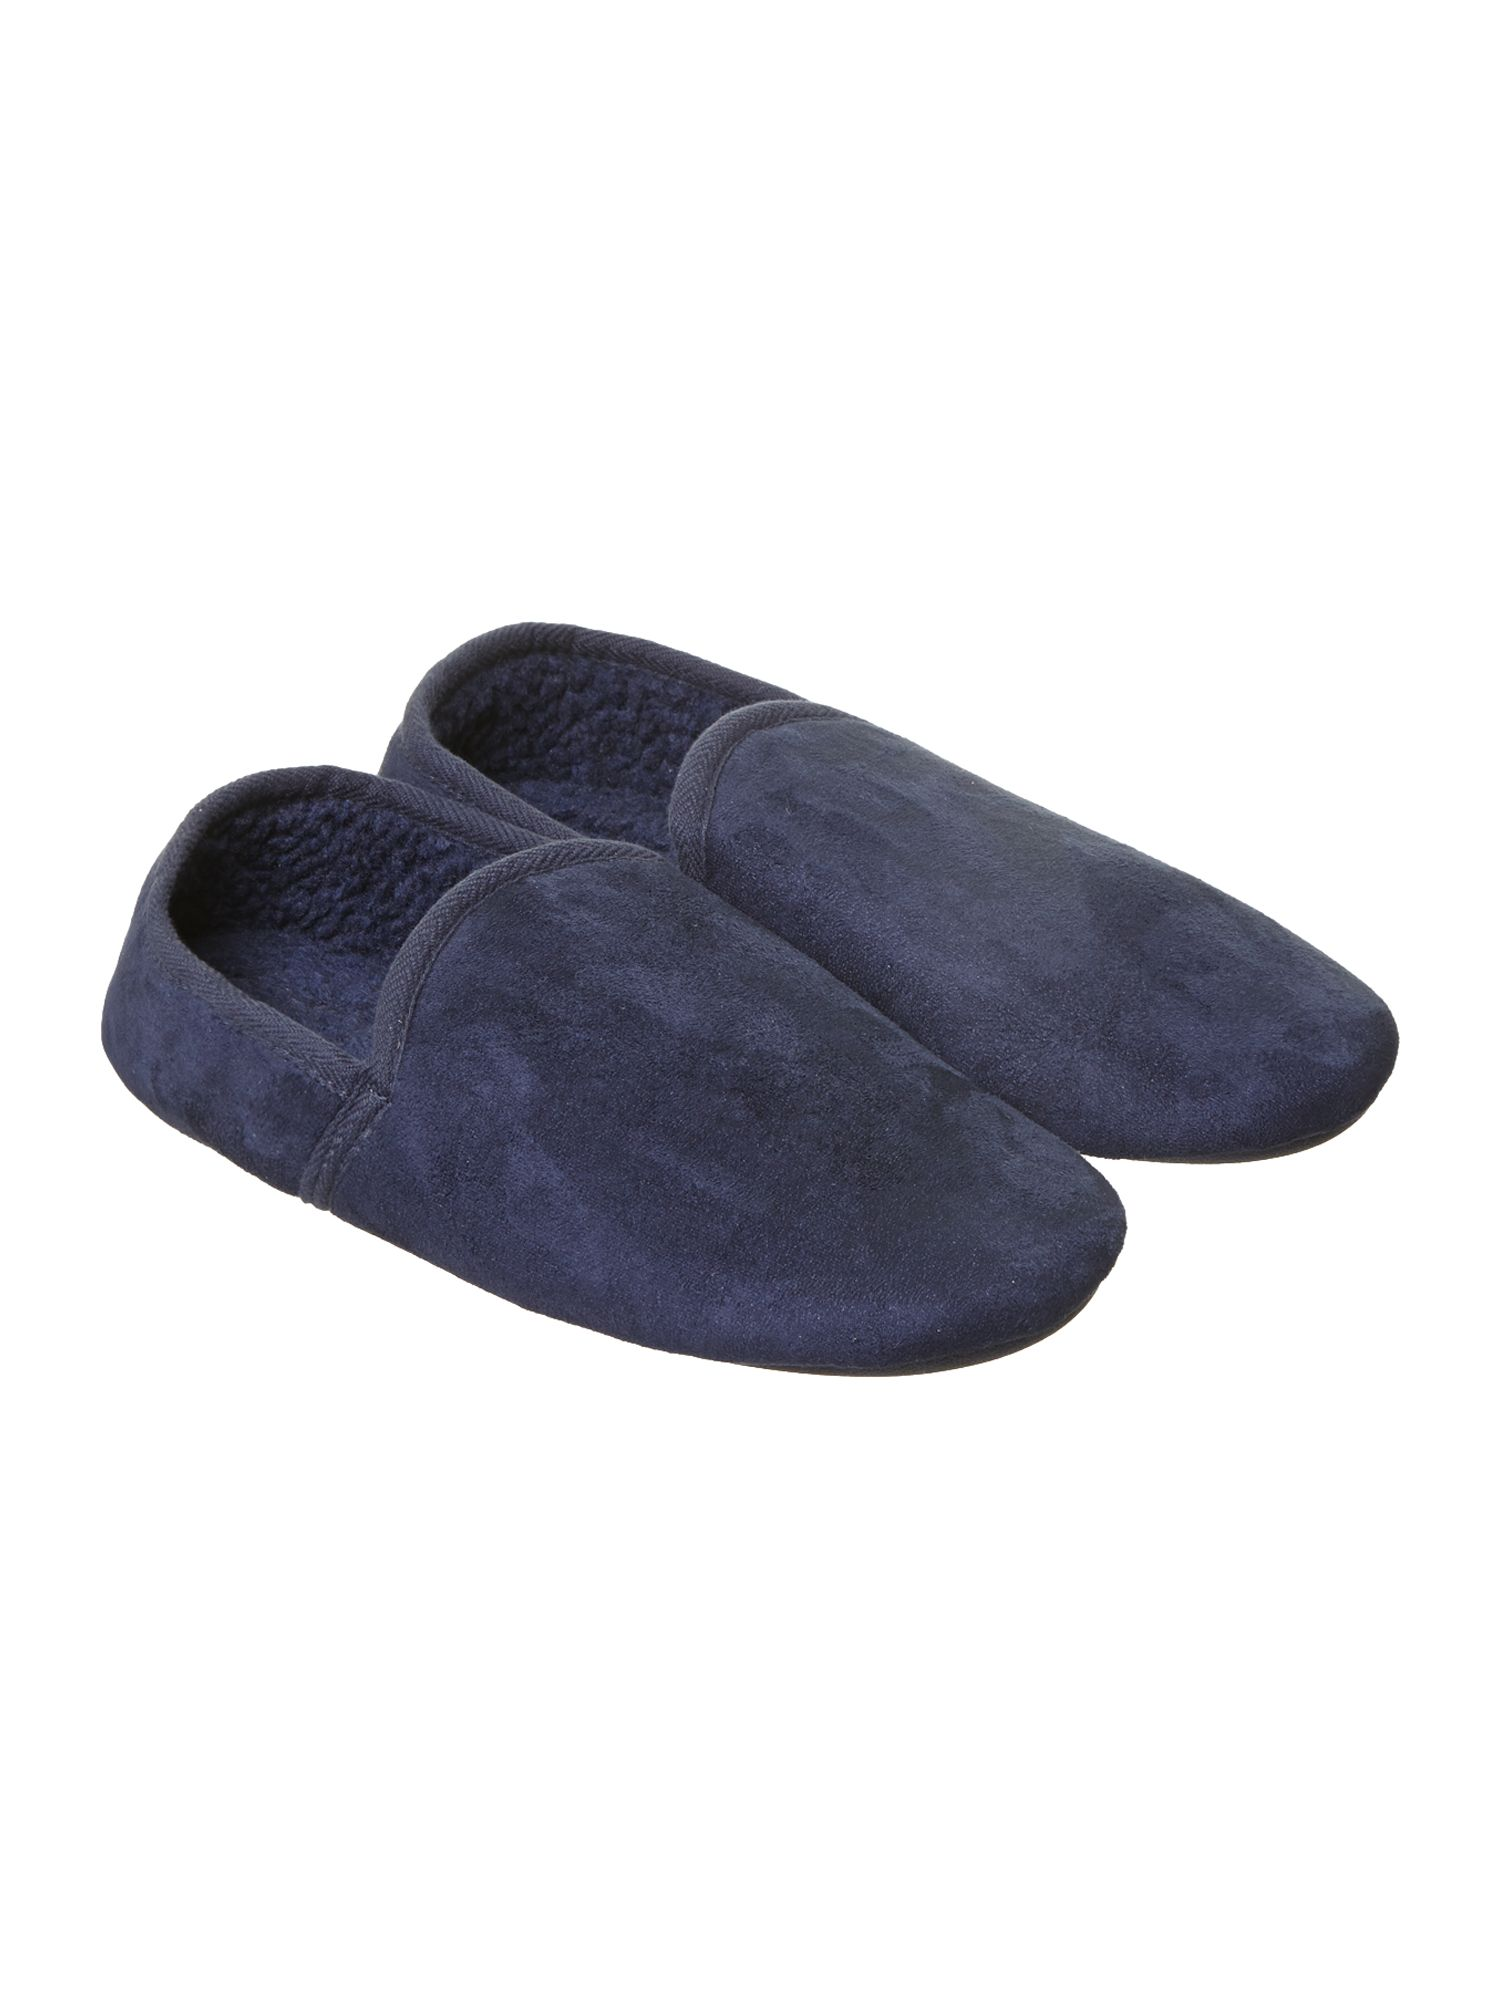 Microsuede full back slippers